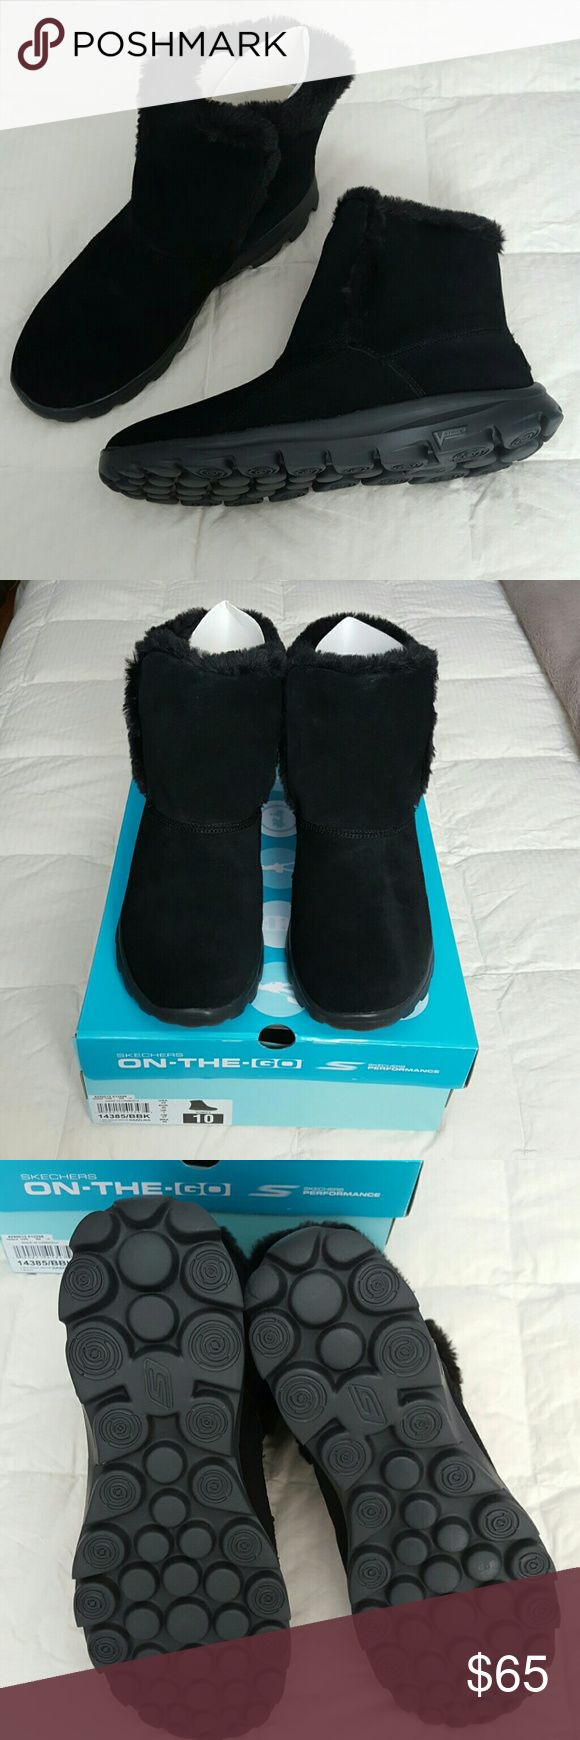 "SKECHERS ON-THE-GO ""GO WALK"" BOOTS SIZE 10 BNIB SKECHERS FAUX FUR WITH REAL SUEDE UPPER GO WALK BOOTS IN THE STYLE ""DAZZLING"", COLOR IS BLACK, IN A WOMEN'S SIZE 10.  PURCHASED THESE LESS THAN 1 WEEK AGO HOPING THE SIZE 10 WOULD FIT ME LIKE THE OTHER SKECHERS DO BUT THEY ARE 1/2 SIZE TOO BIG FOR MY FOOT.  I NORMALLY WEAR A 9-9.5 BUT THEY WERE SOLD OUT OF MY SIZE.   PERFECT JUST IN TIME FOR CHRISTMAS & THE CHILLY WINTER :) Skechers Shoes Ankle Boots & Booties"